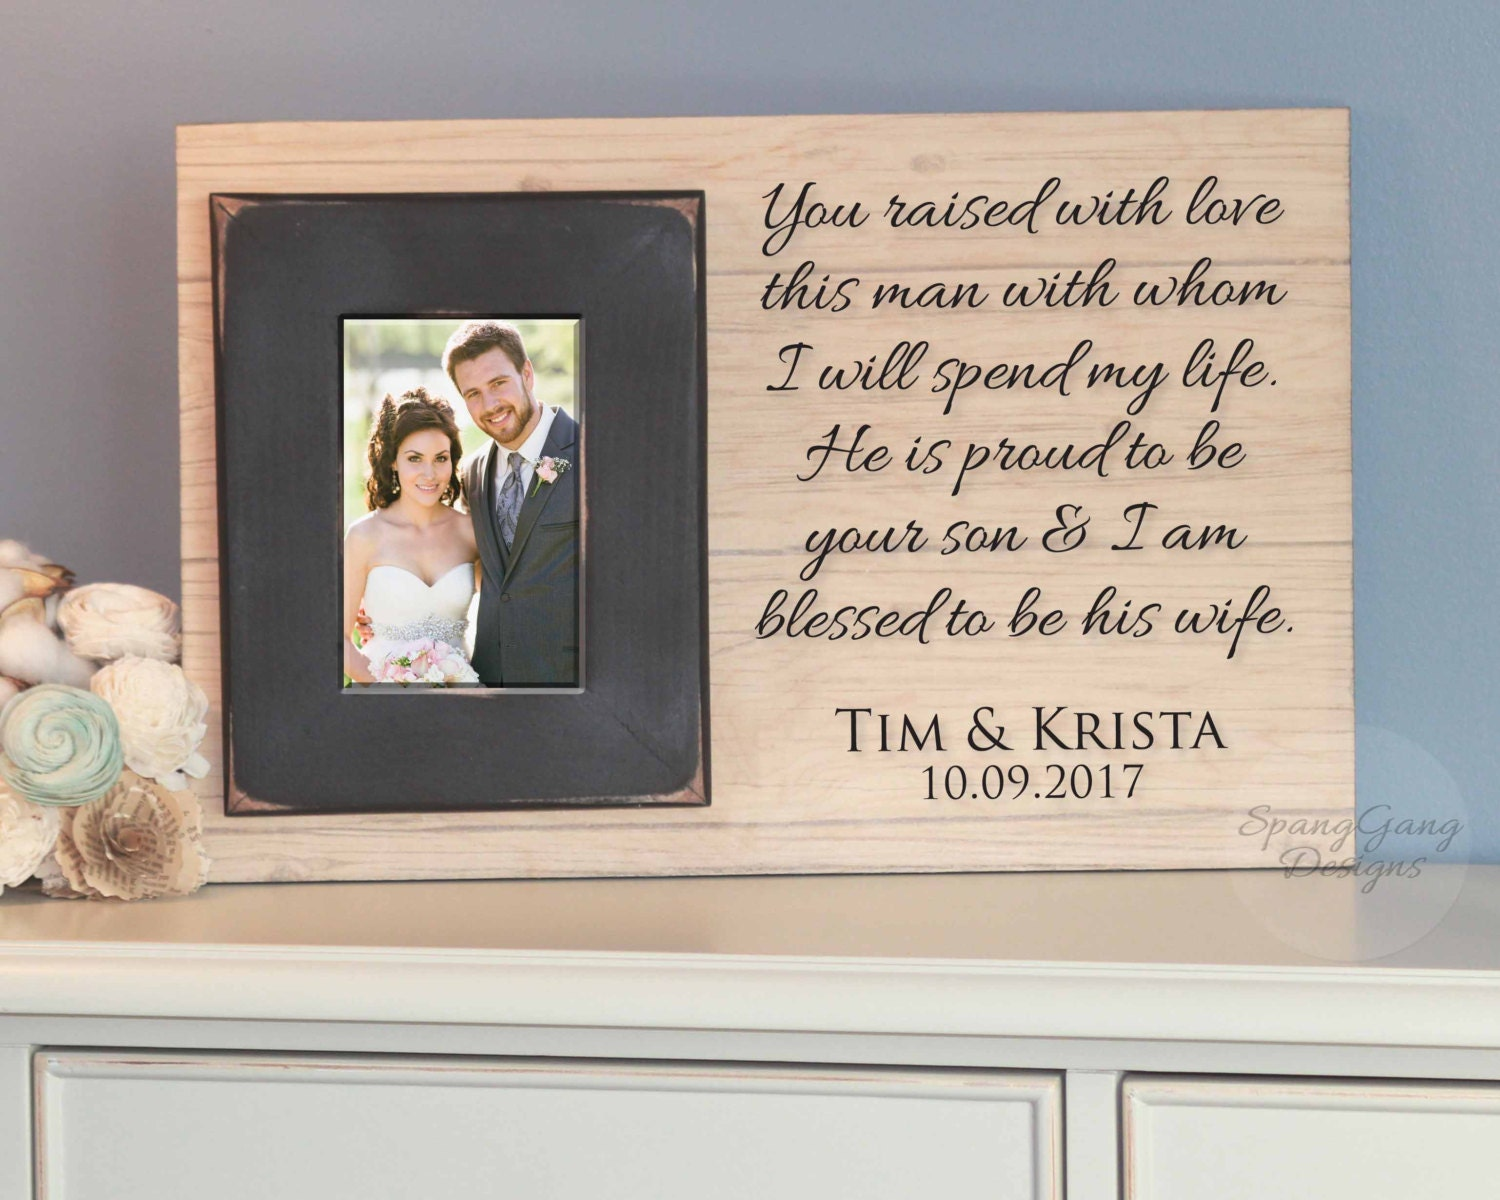 Wedding Gifts For Parents Of The Groom : Wedding gift for parents of the Groom gift by SpangGangDesigns